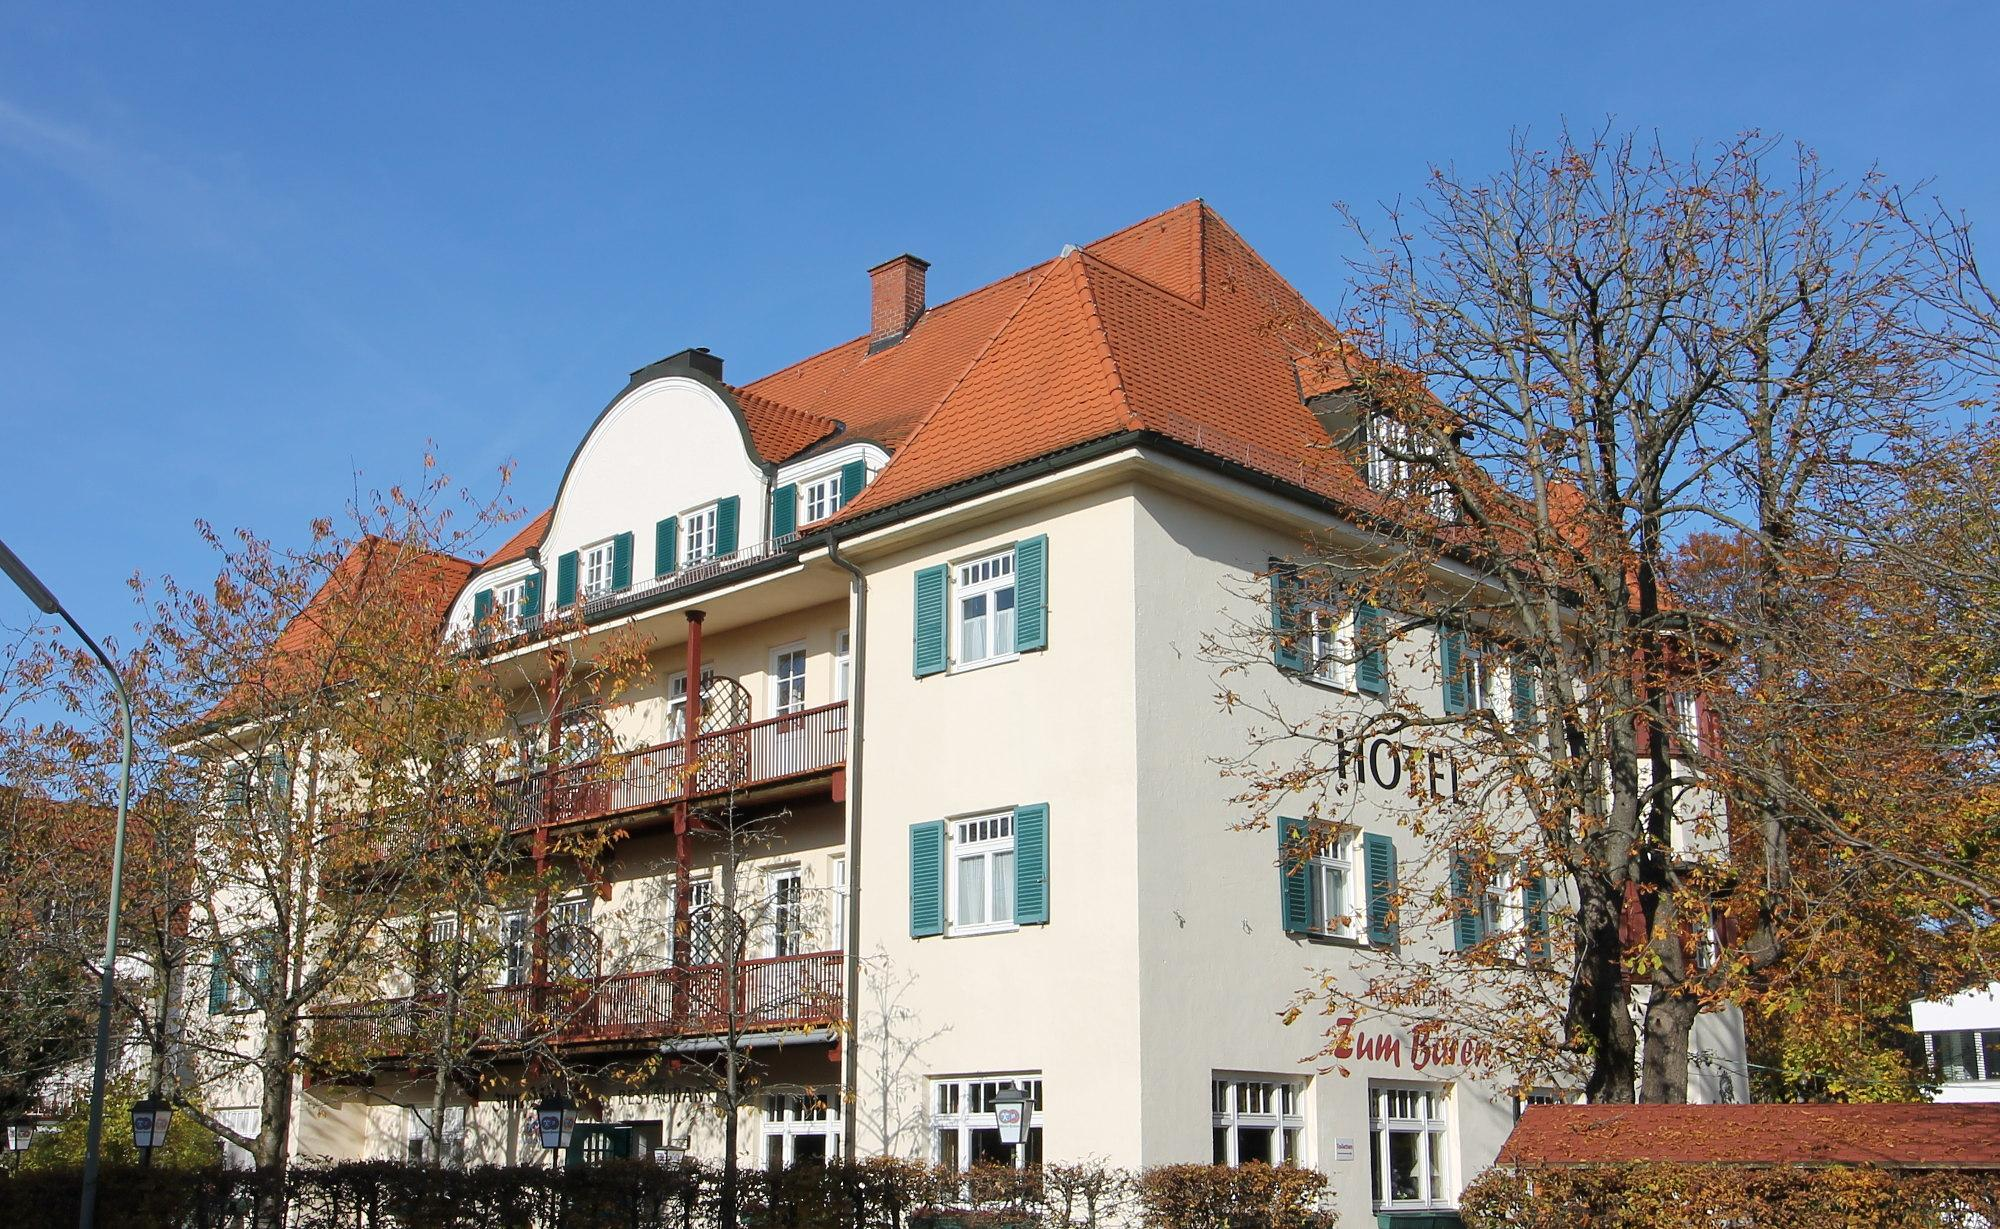 Hotel Gautinger Hof in Gauting